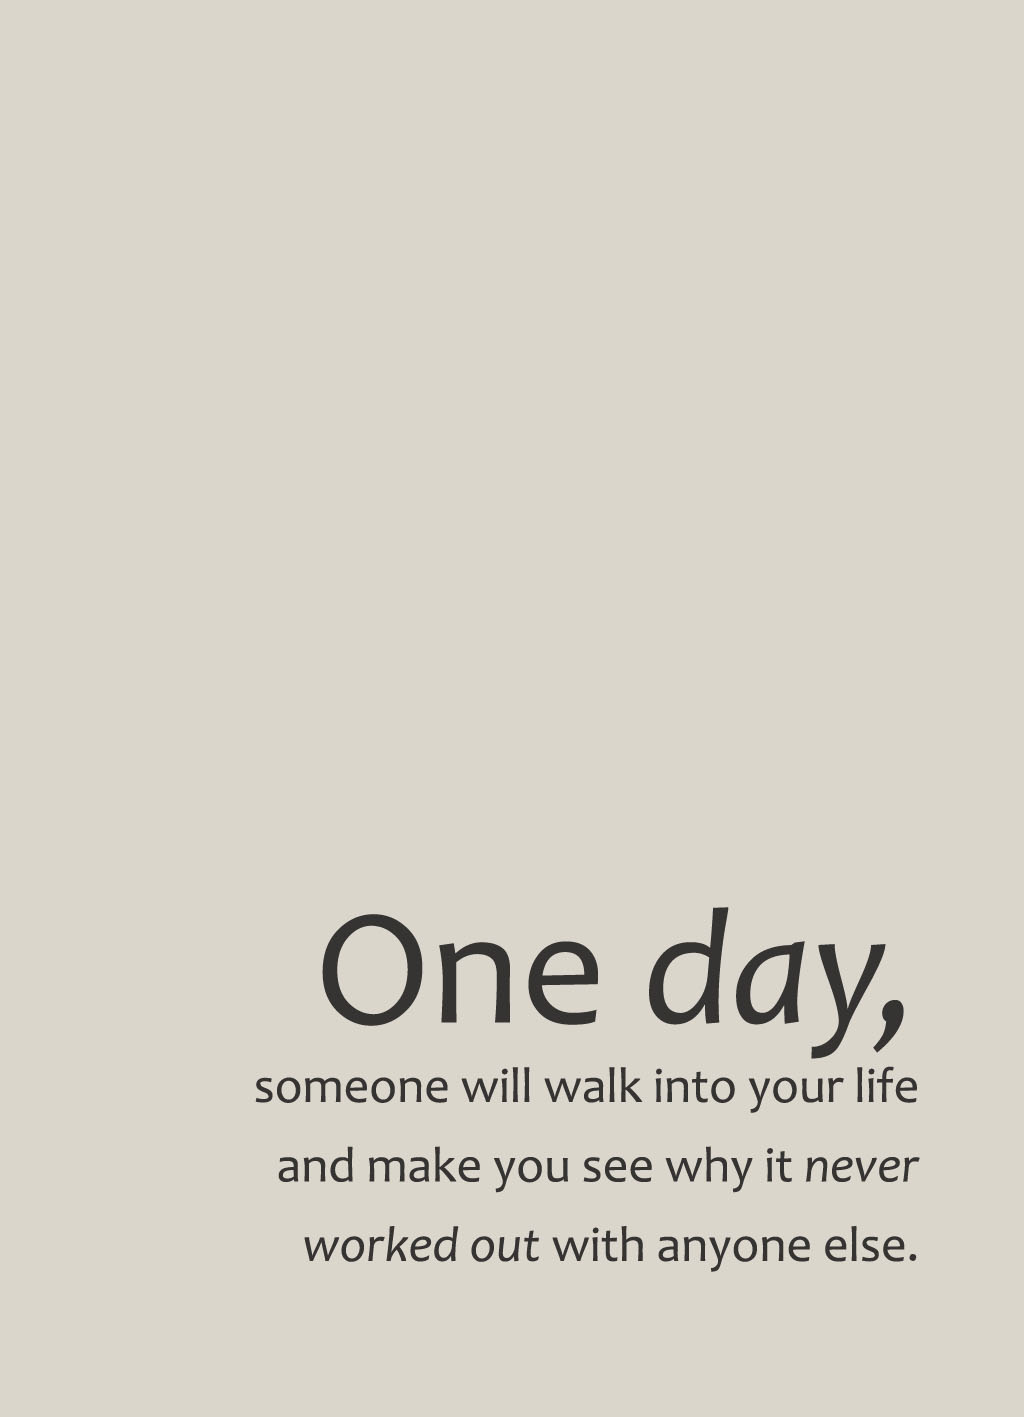 Quote of the Day :: one day, someone will walk into your life and make you see why it never worked out with anyone else